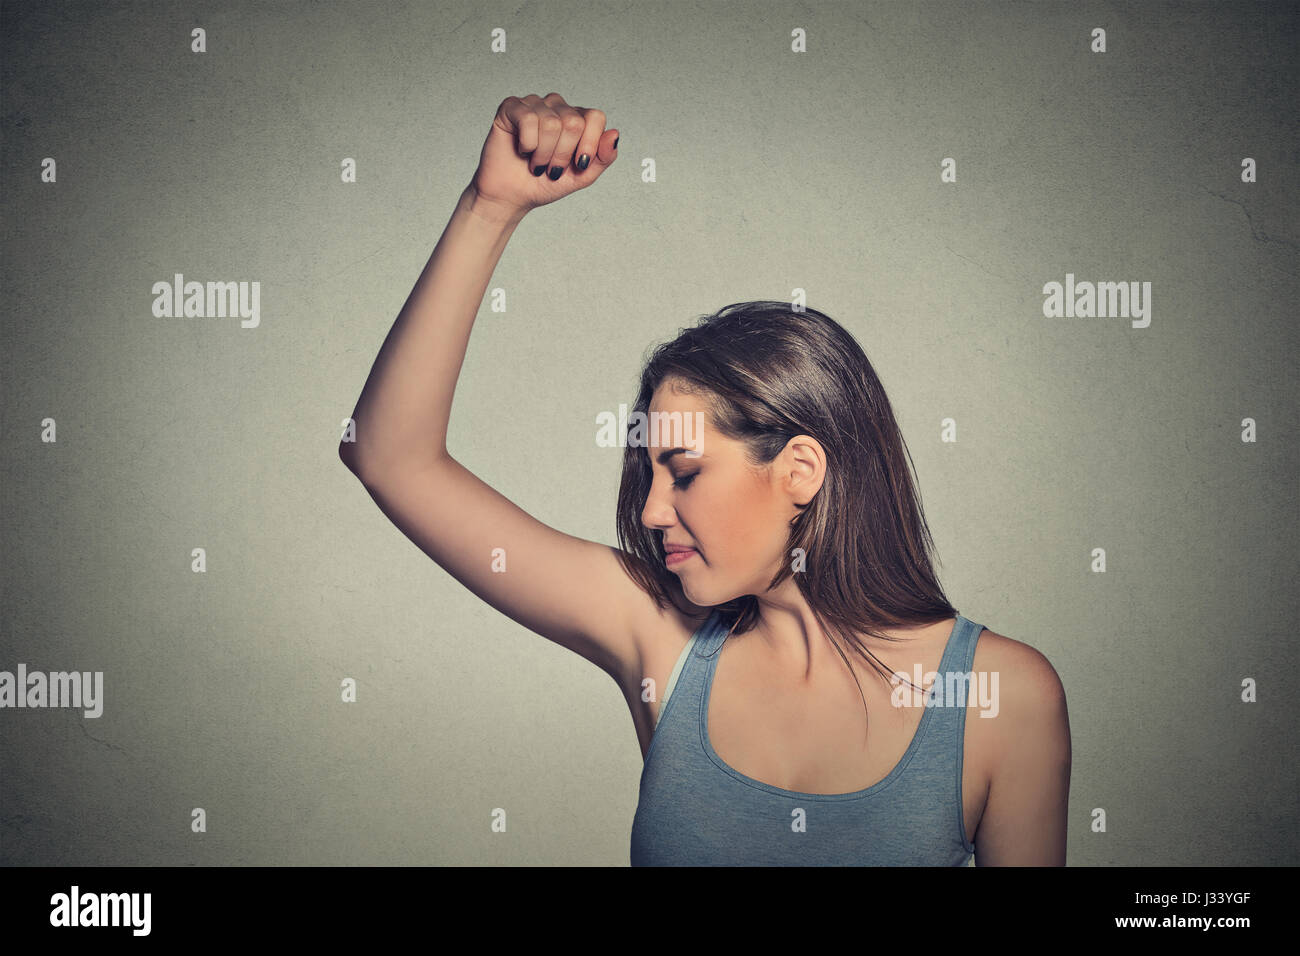 Closeup portrait young woman, smelling, sniffing her wet armpit, something stinks, very bad foul odor situation - Stock Image